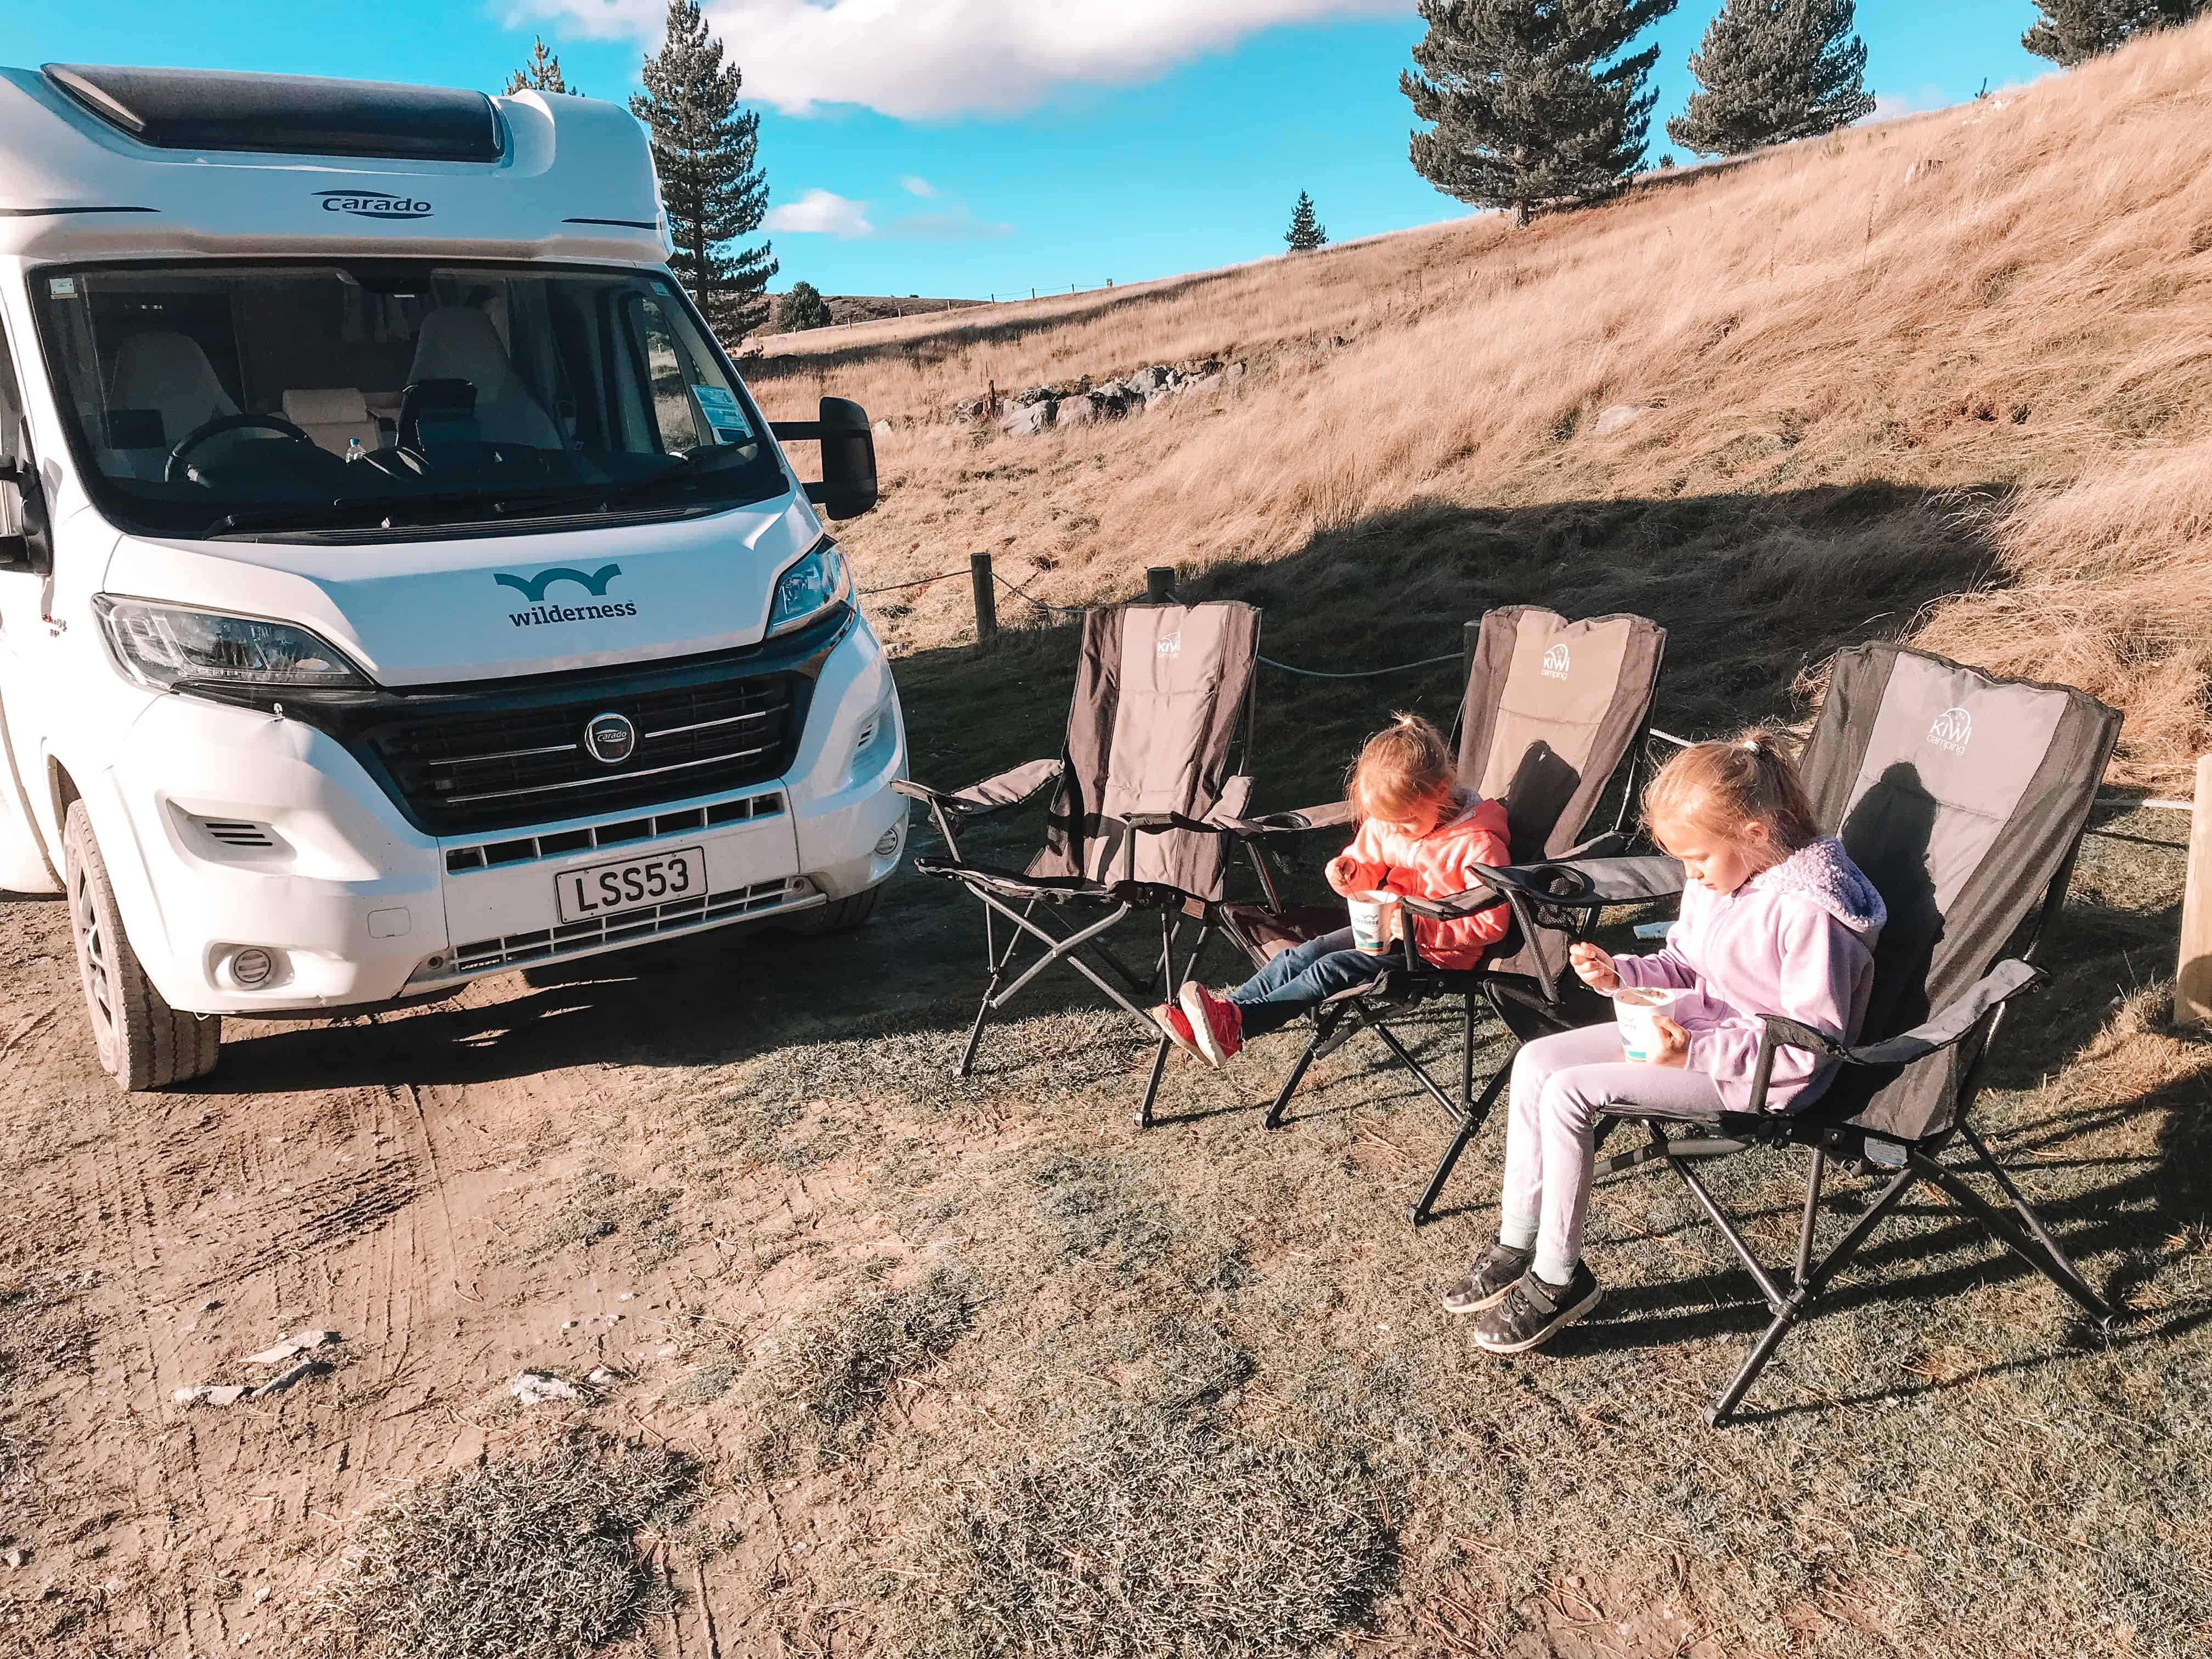 VIP package Wilderness Motorhomes